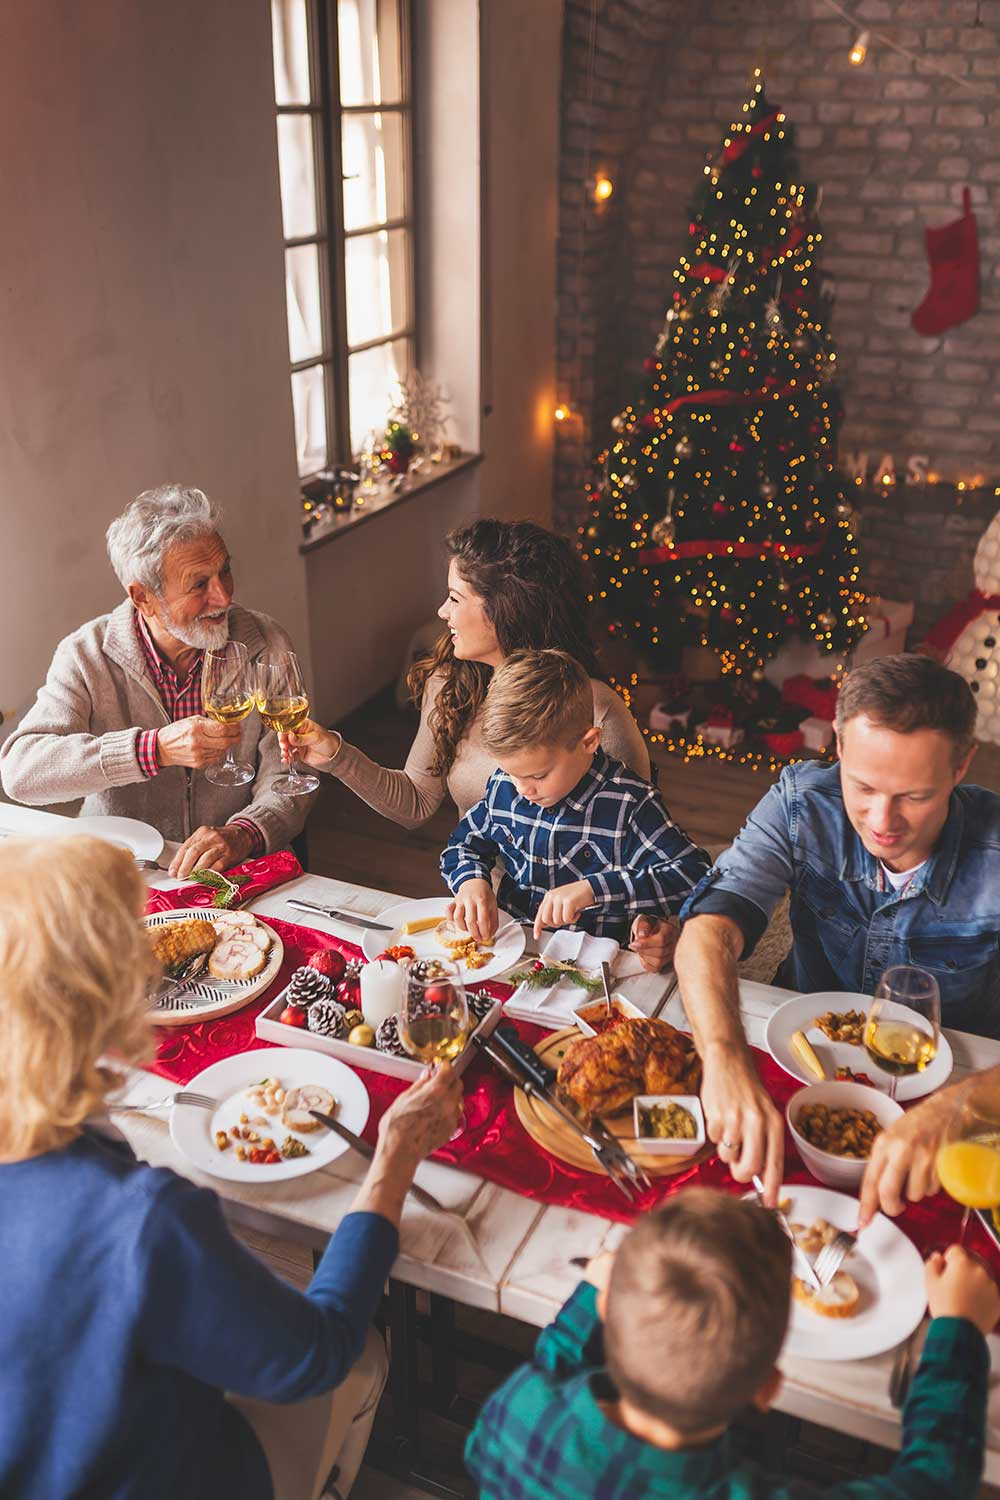 Family enjoying a holiday meal at a table surrounded by Christmas decorations, lights and a Christmas tree.